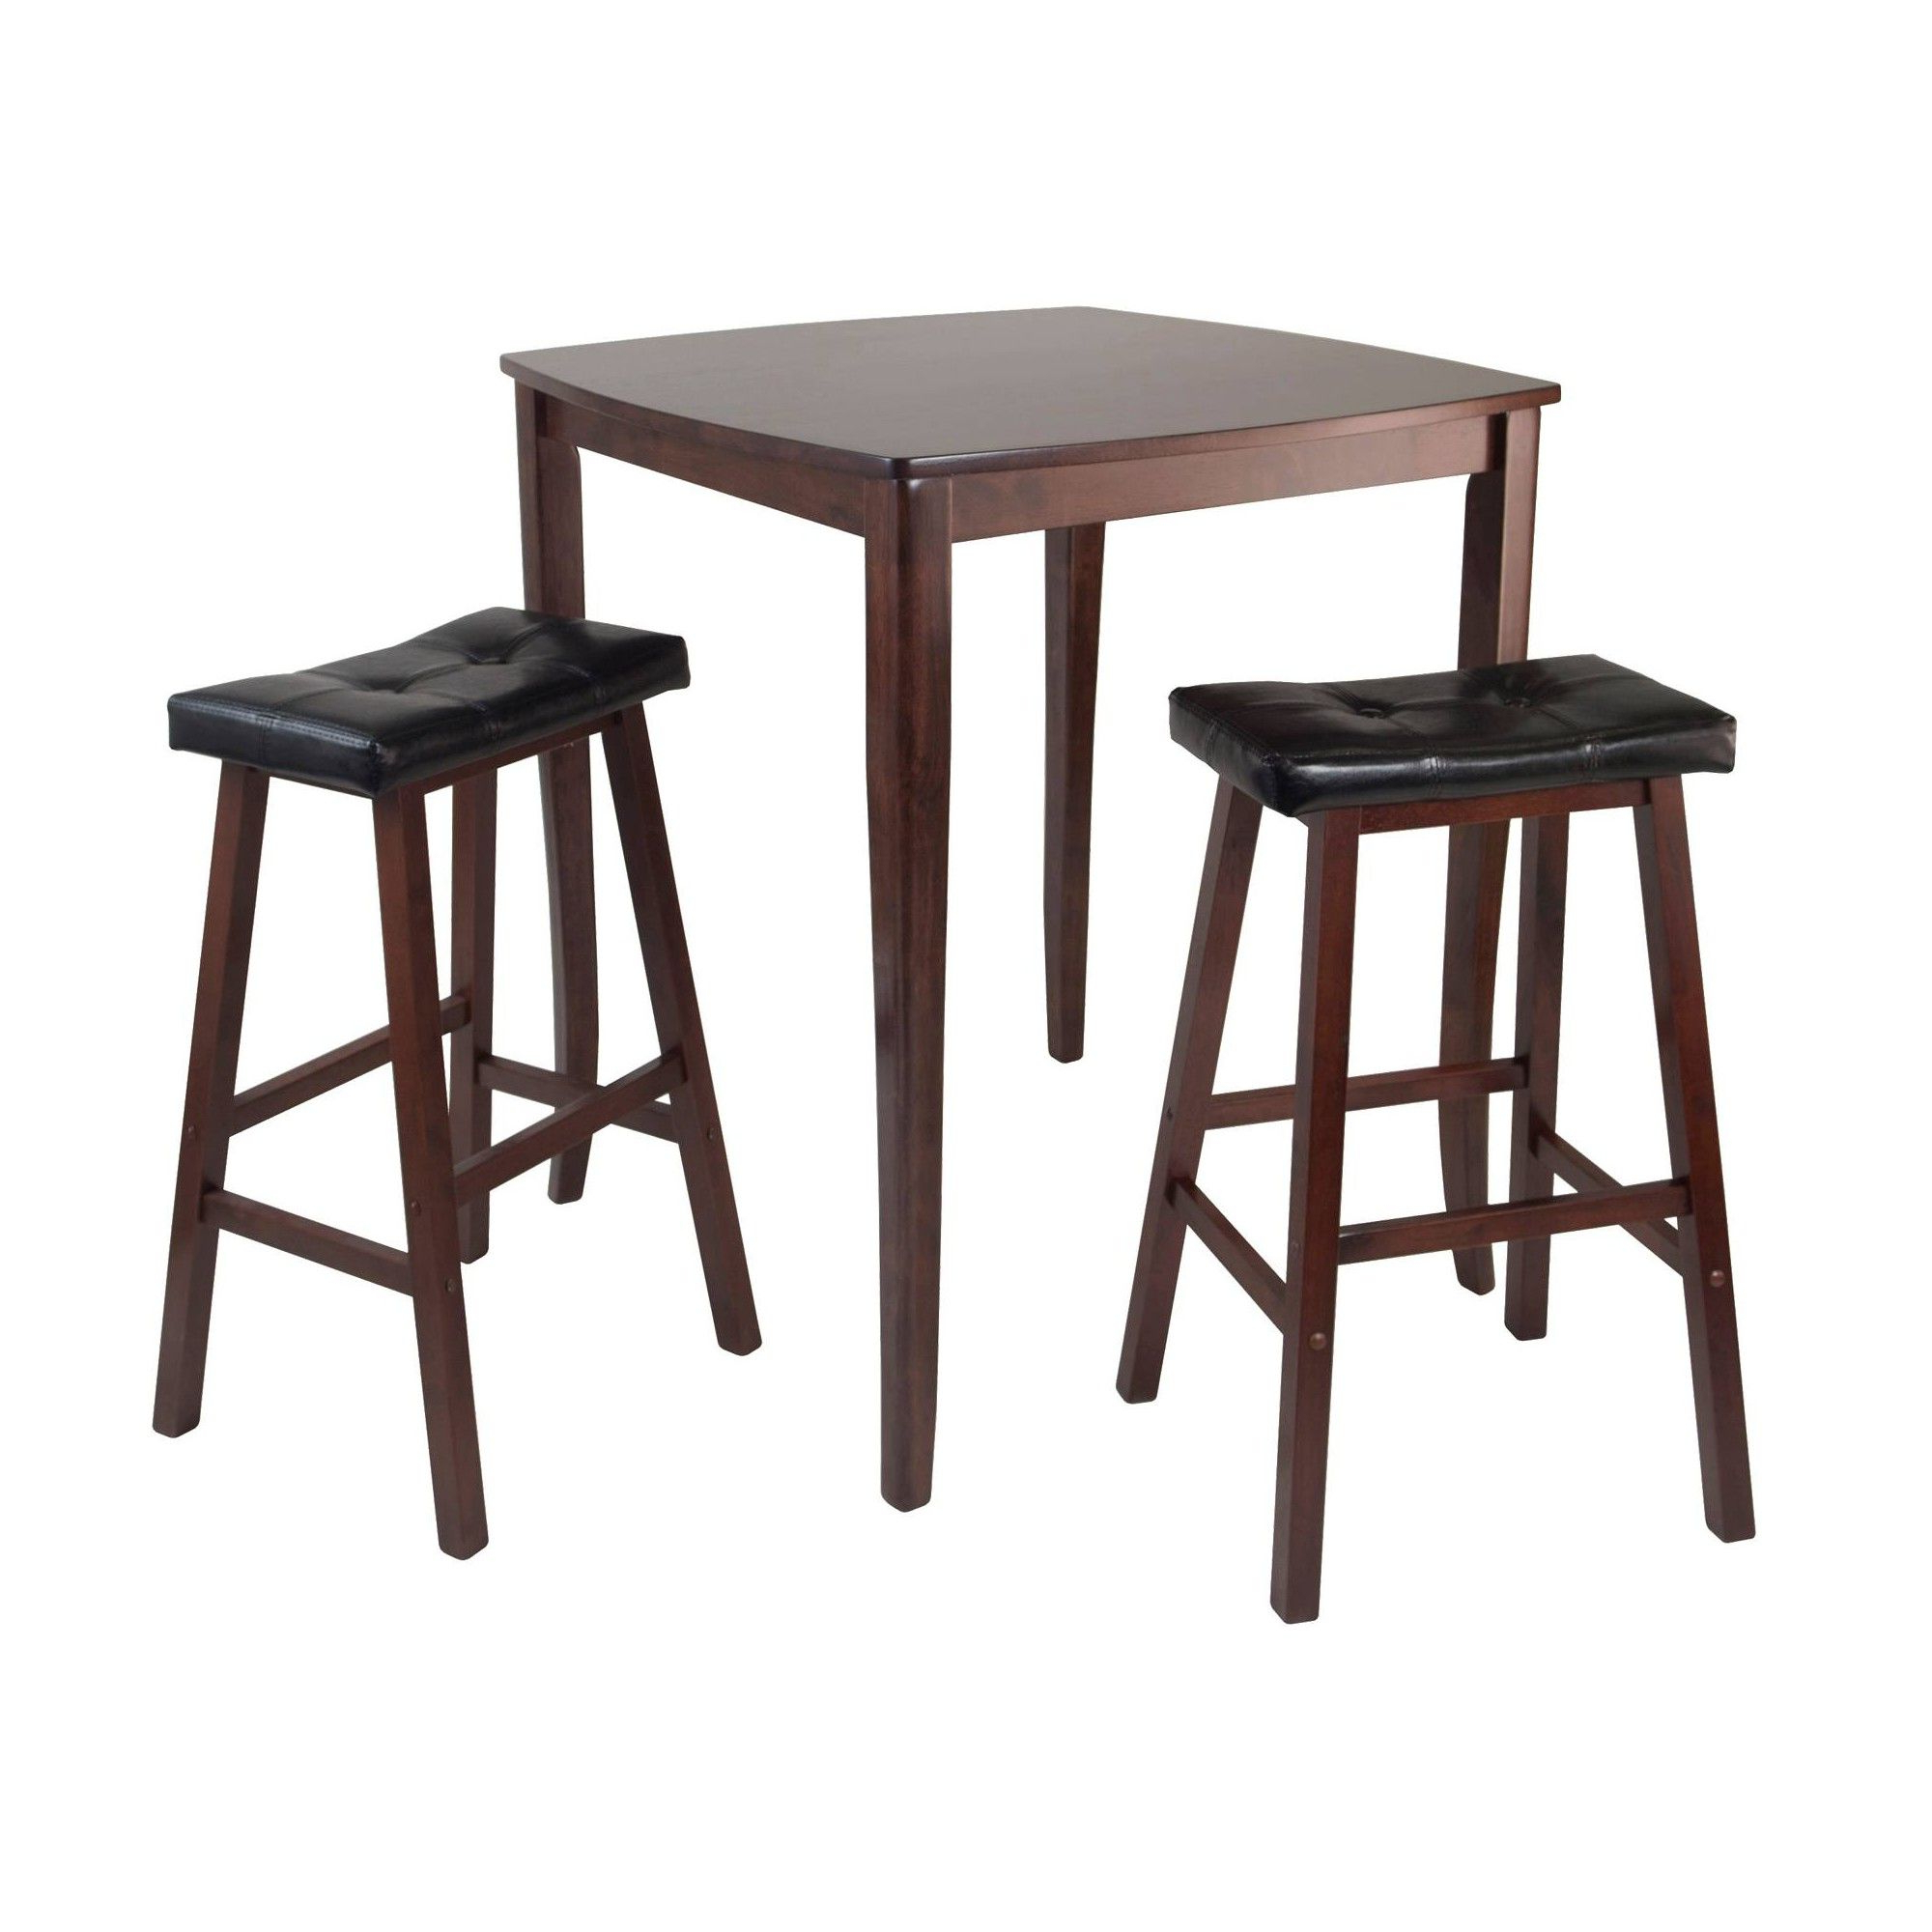 3 Piece Inglewood Set High Table With Cushion Seat Bar Stools Wood Within Most Recent Bettencourt 3 Piece Counter Height Solid Wood Dining Sets (View 1 of 20)